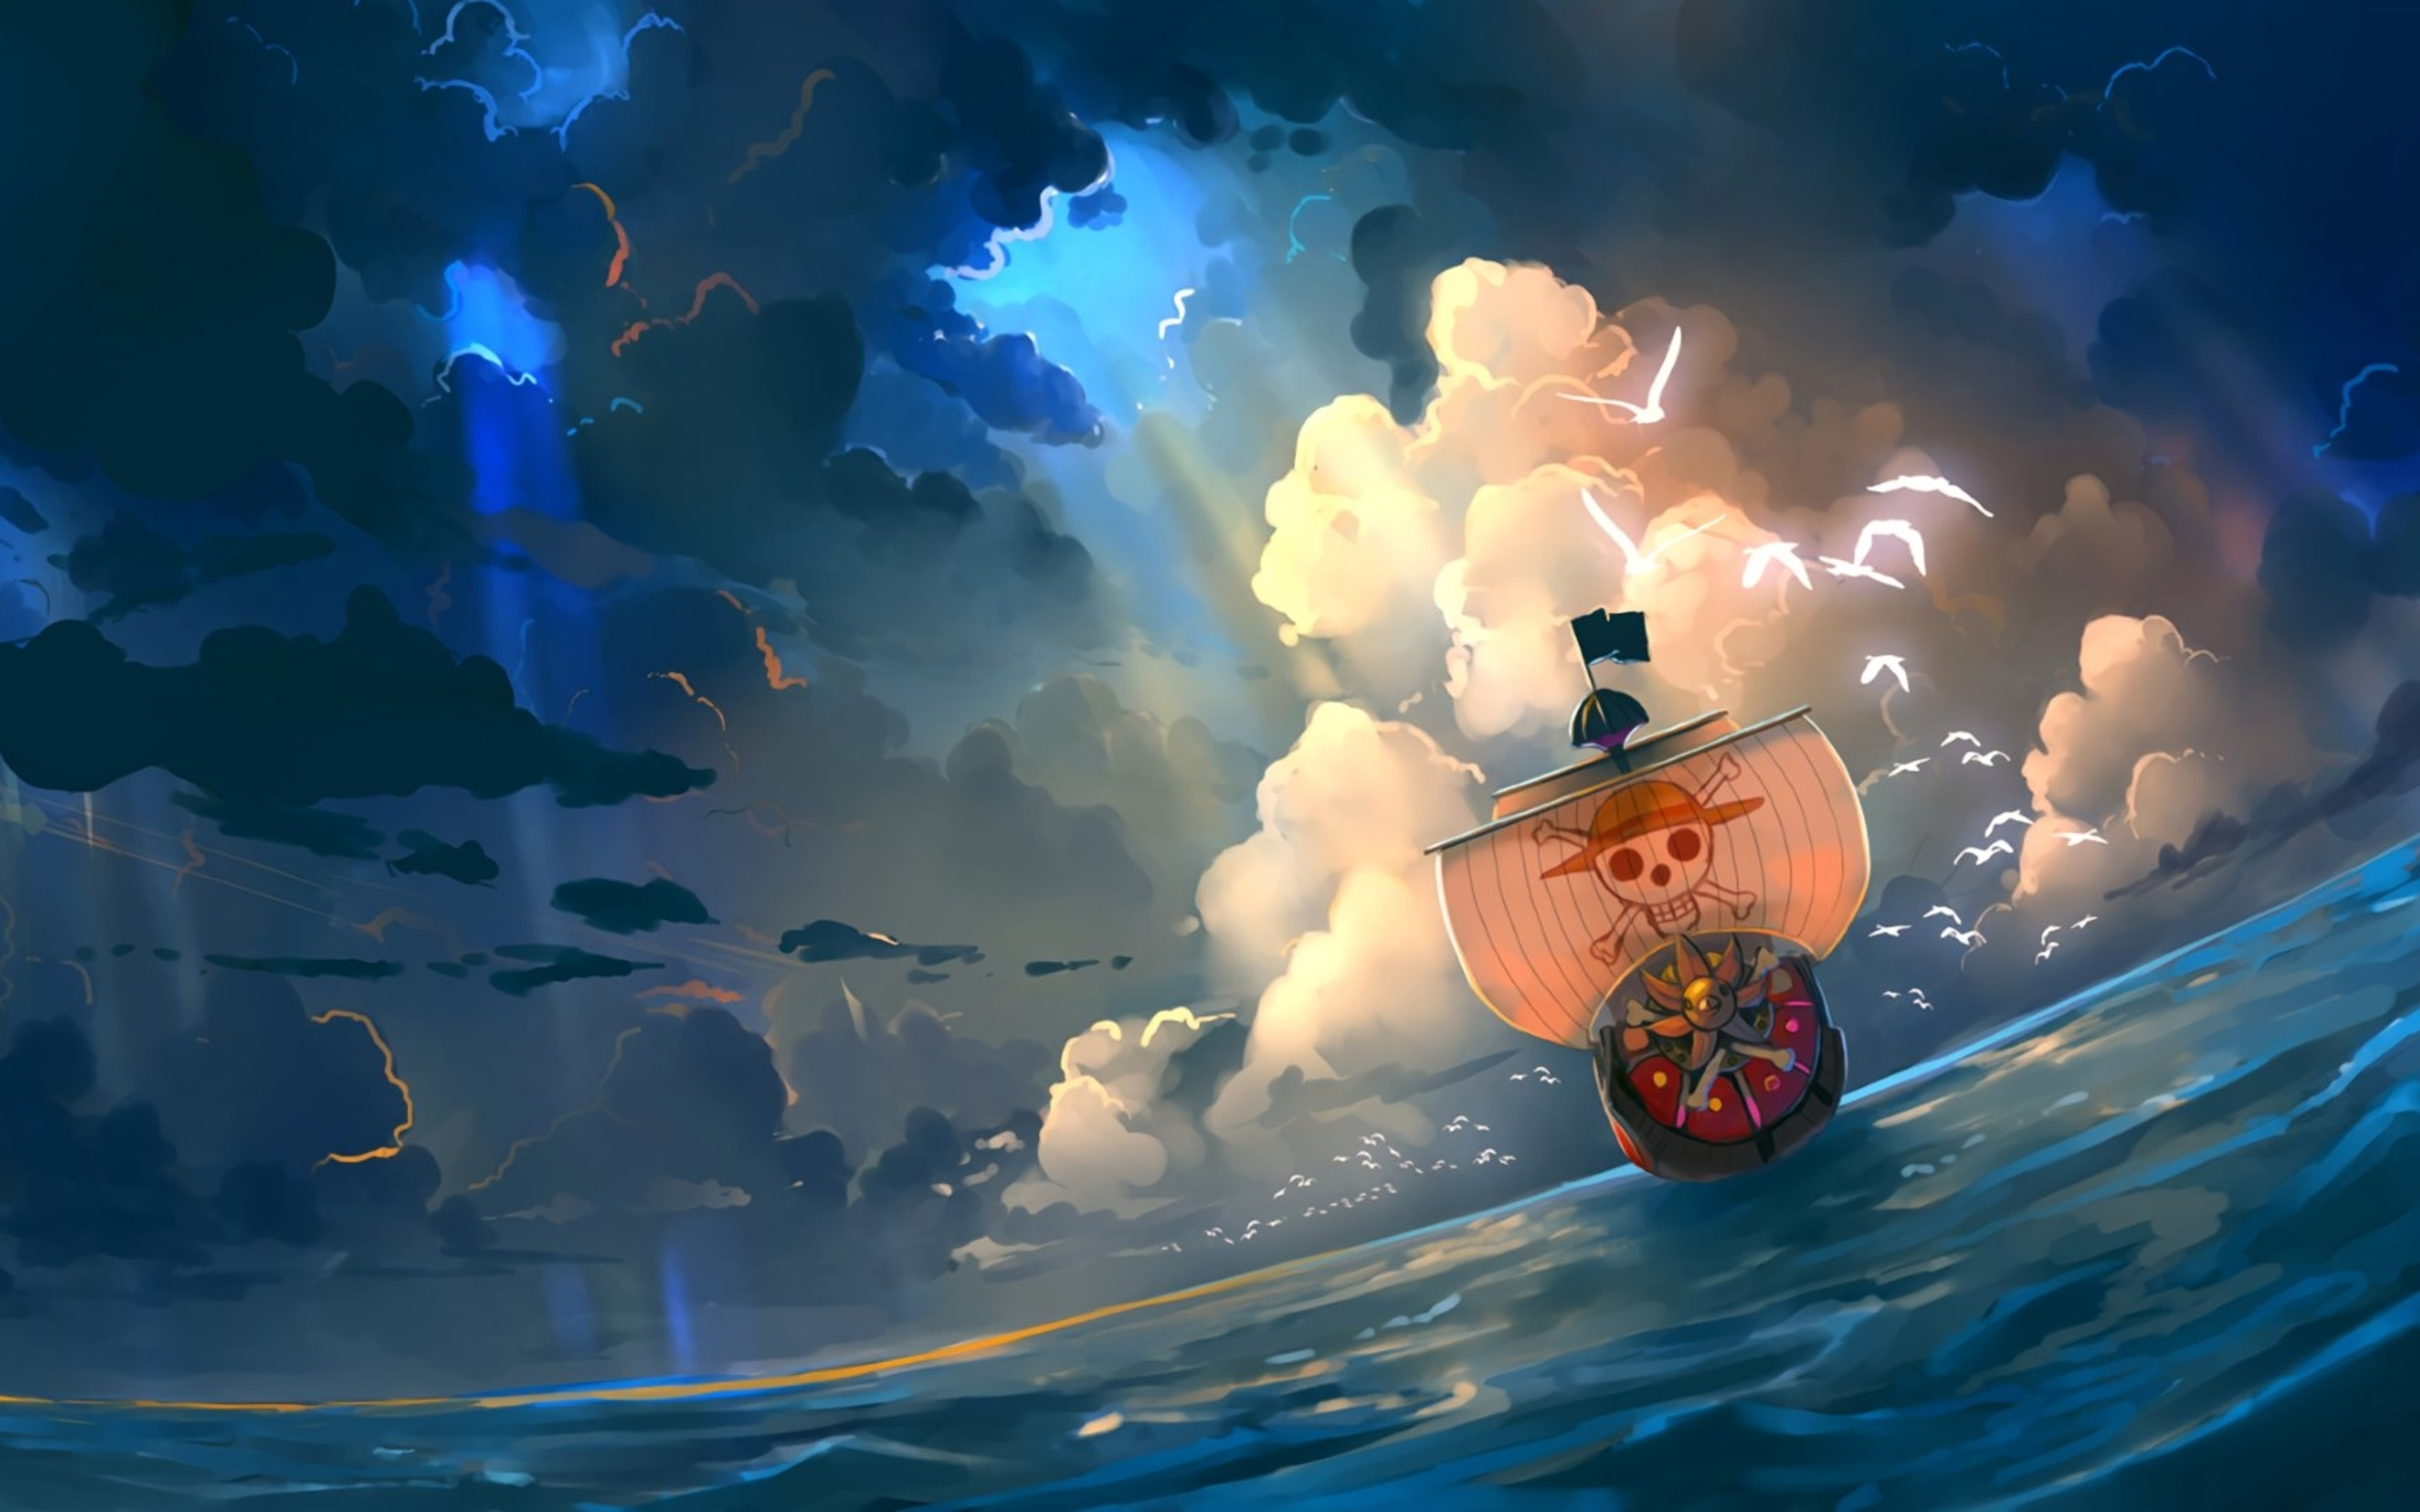 These 15 one piece iphone wallpapers are free to download for your iphone. 3840x2400 One Piece Anime Artwork 4k HD 4k Wallpapers ...